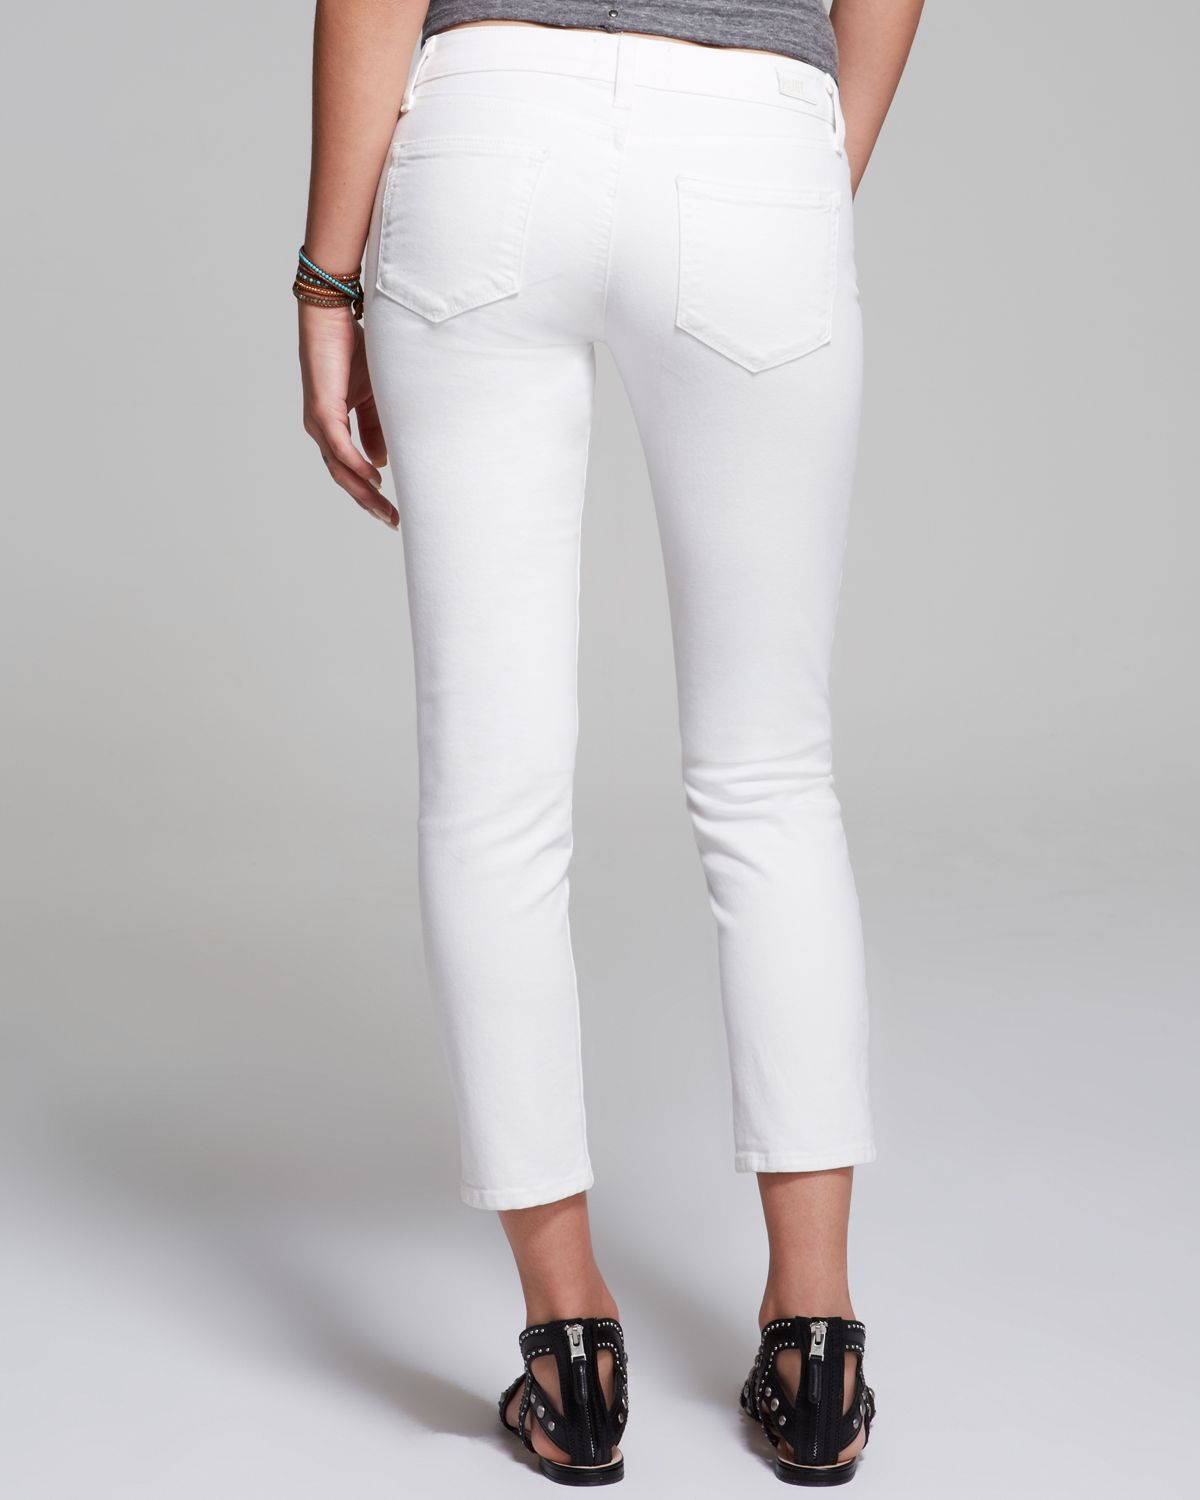 79915d1c094 PAIGE Jeans - Kylie Crop In Optic White in White - Lyst